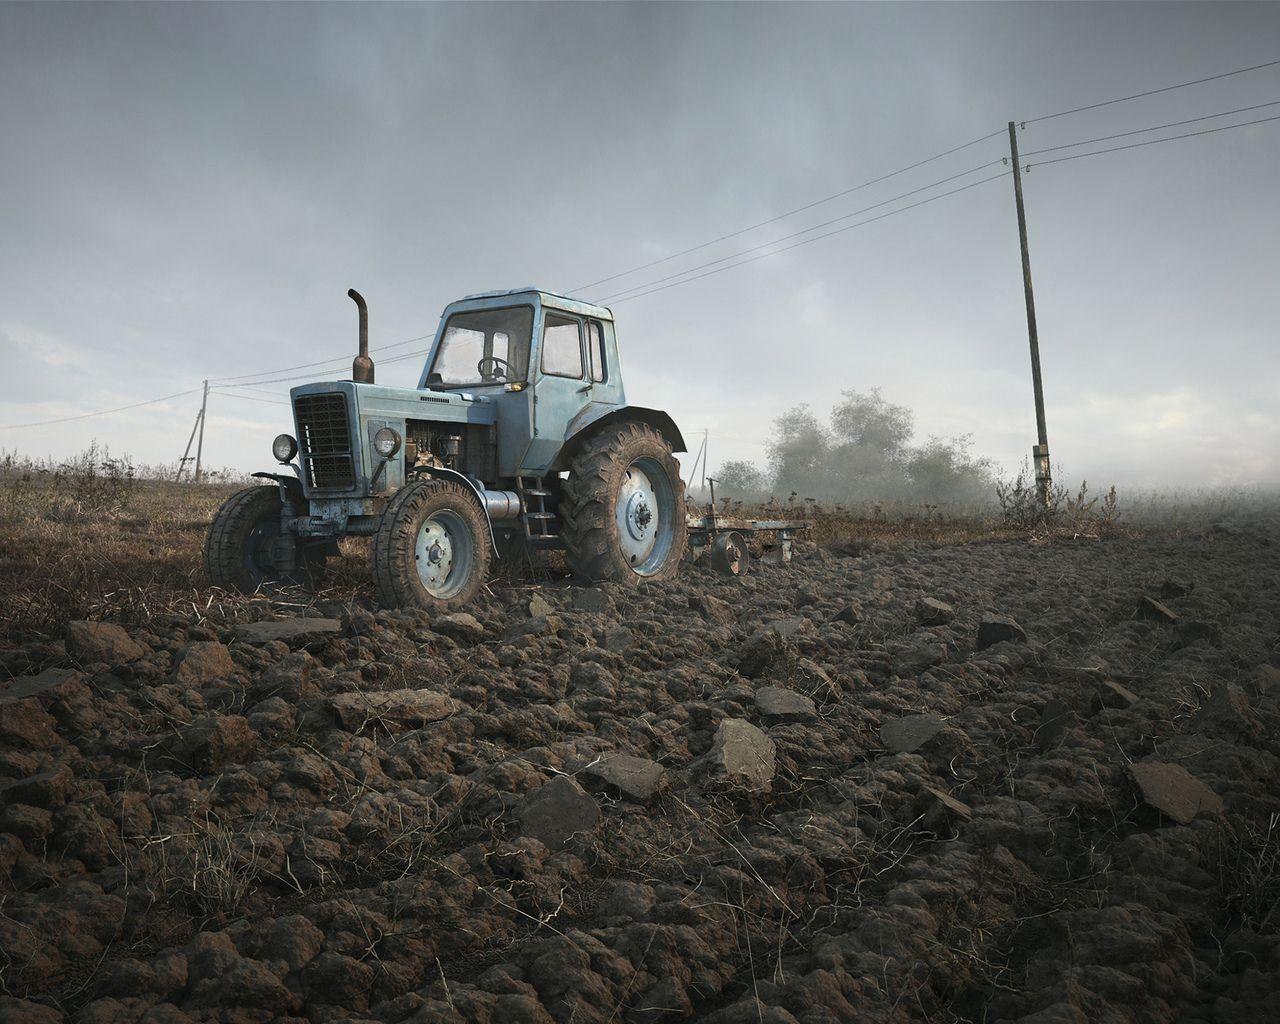 Download wallpaper field, belarus, tractor, the sky, 3d with ...